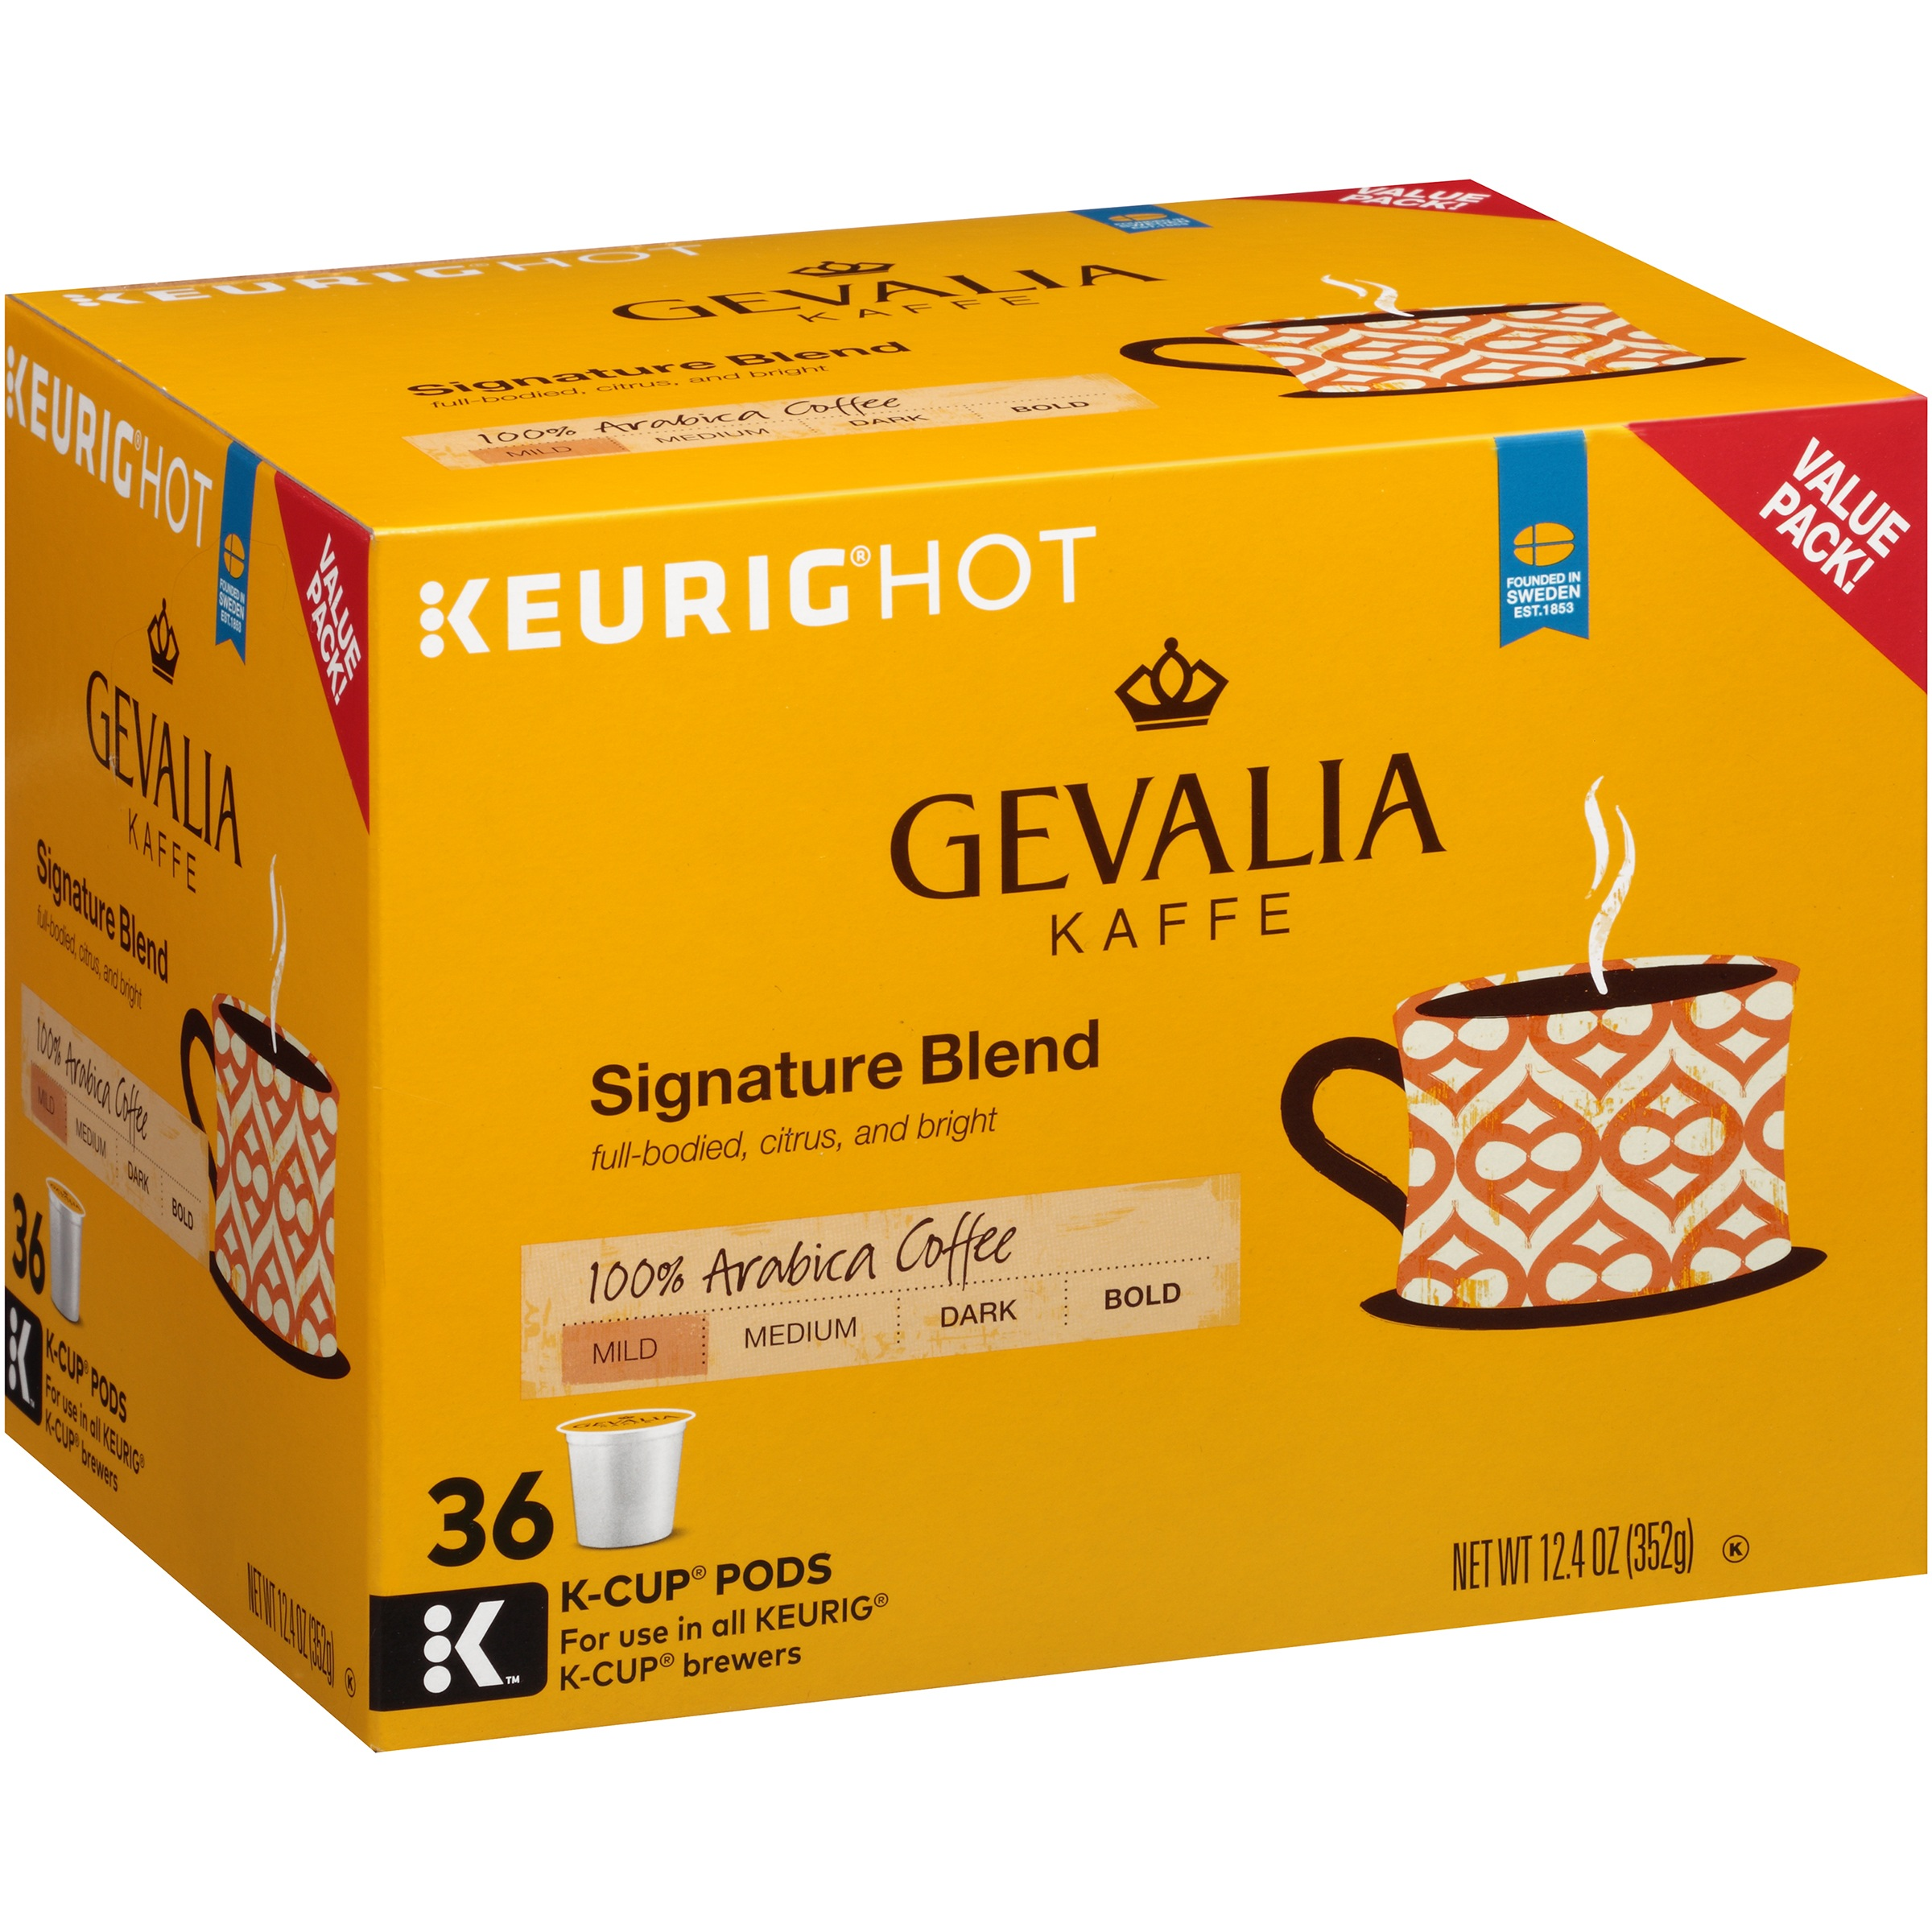 Gevalia Kaffe Signature Blend Mild Roast Coffee K-Cup Packs, 36 count, 12.4 OZ (352g)